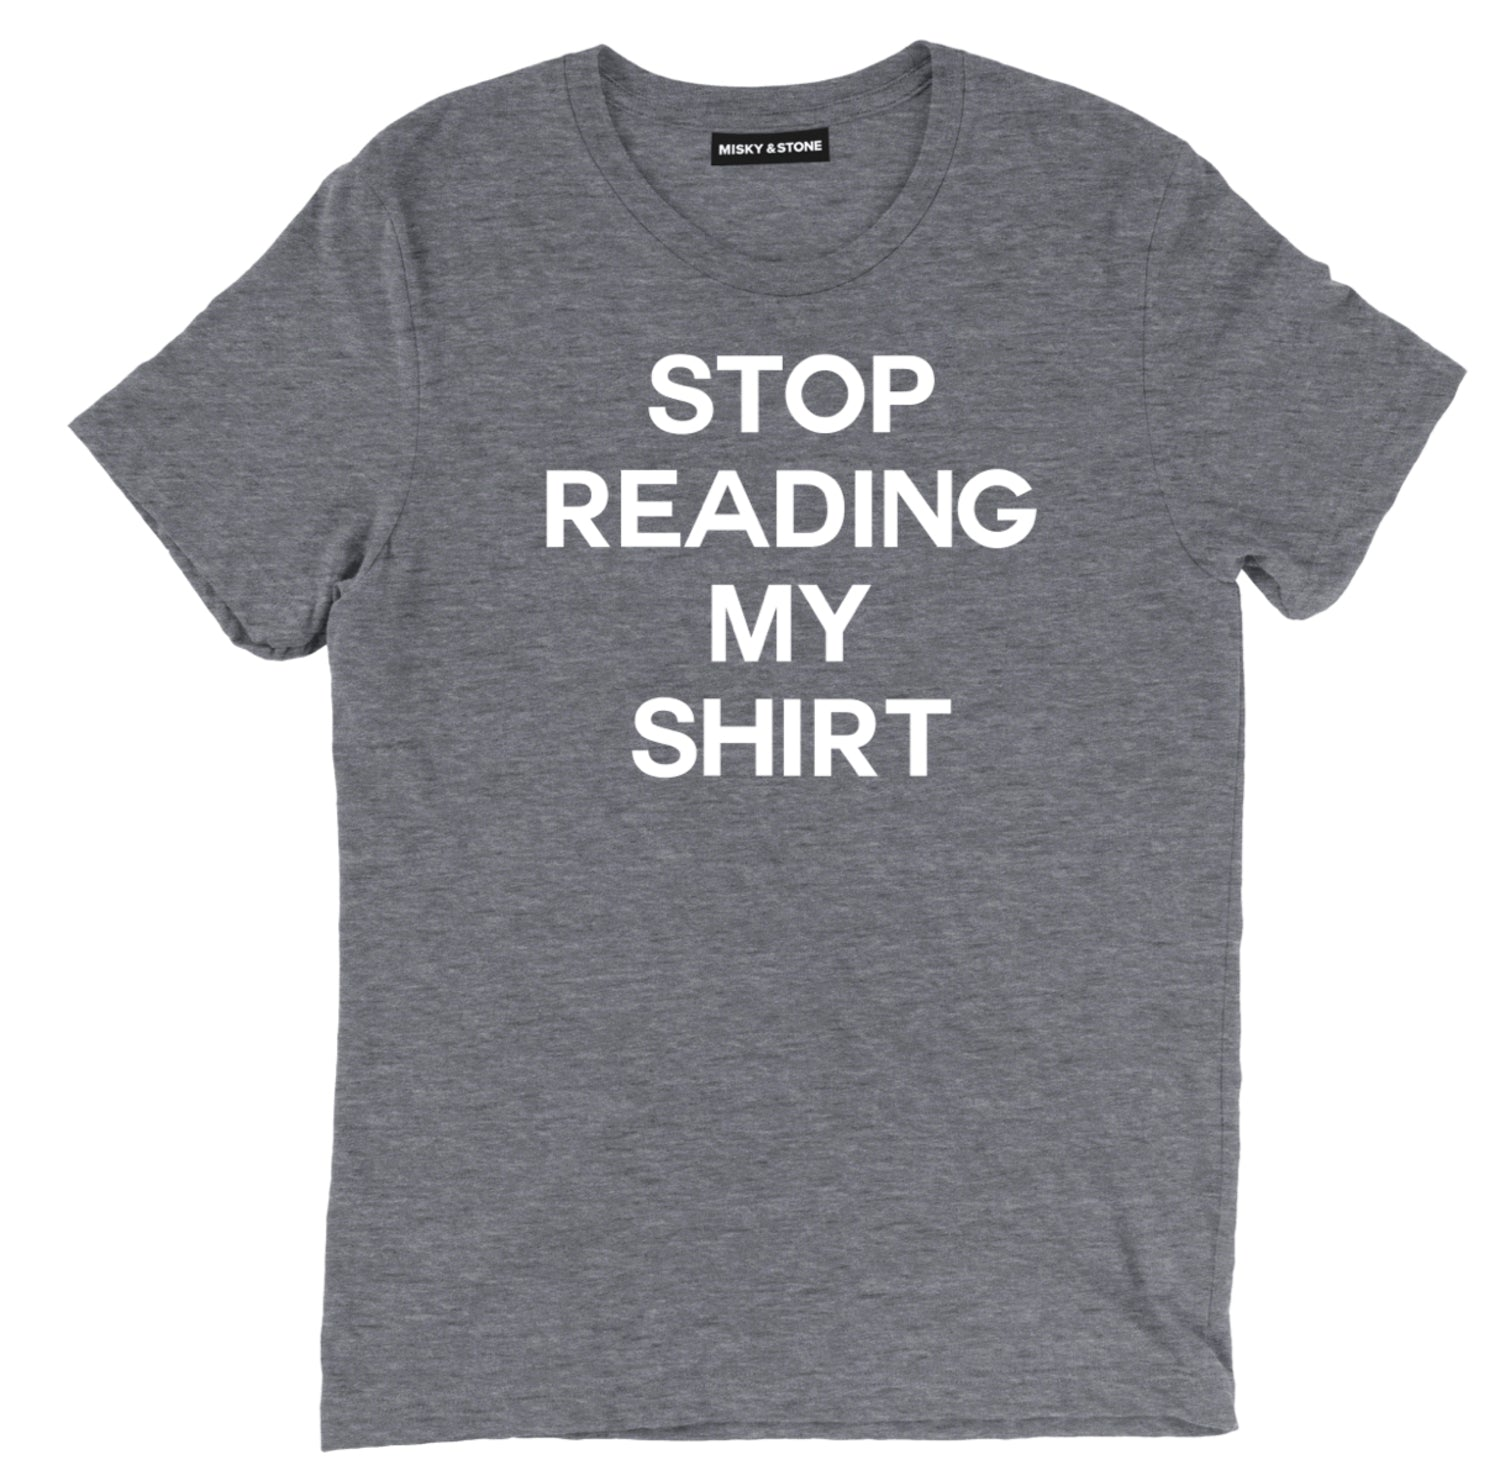 stop reading my shirt sarcastic t shirts, funny stop reading my shirt sarcastic shirts, sarcastic tee shirts, sarcastic tees, sarcastic t shirt sayings, sarcastic t shirts quotes, funny sarcastic t shirts